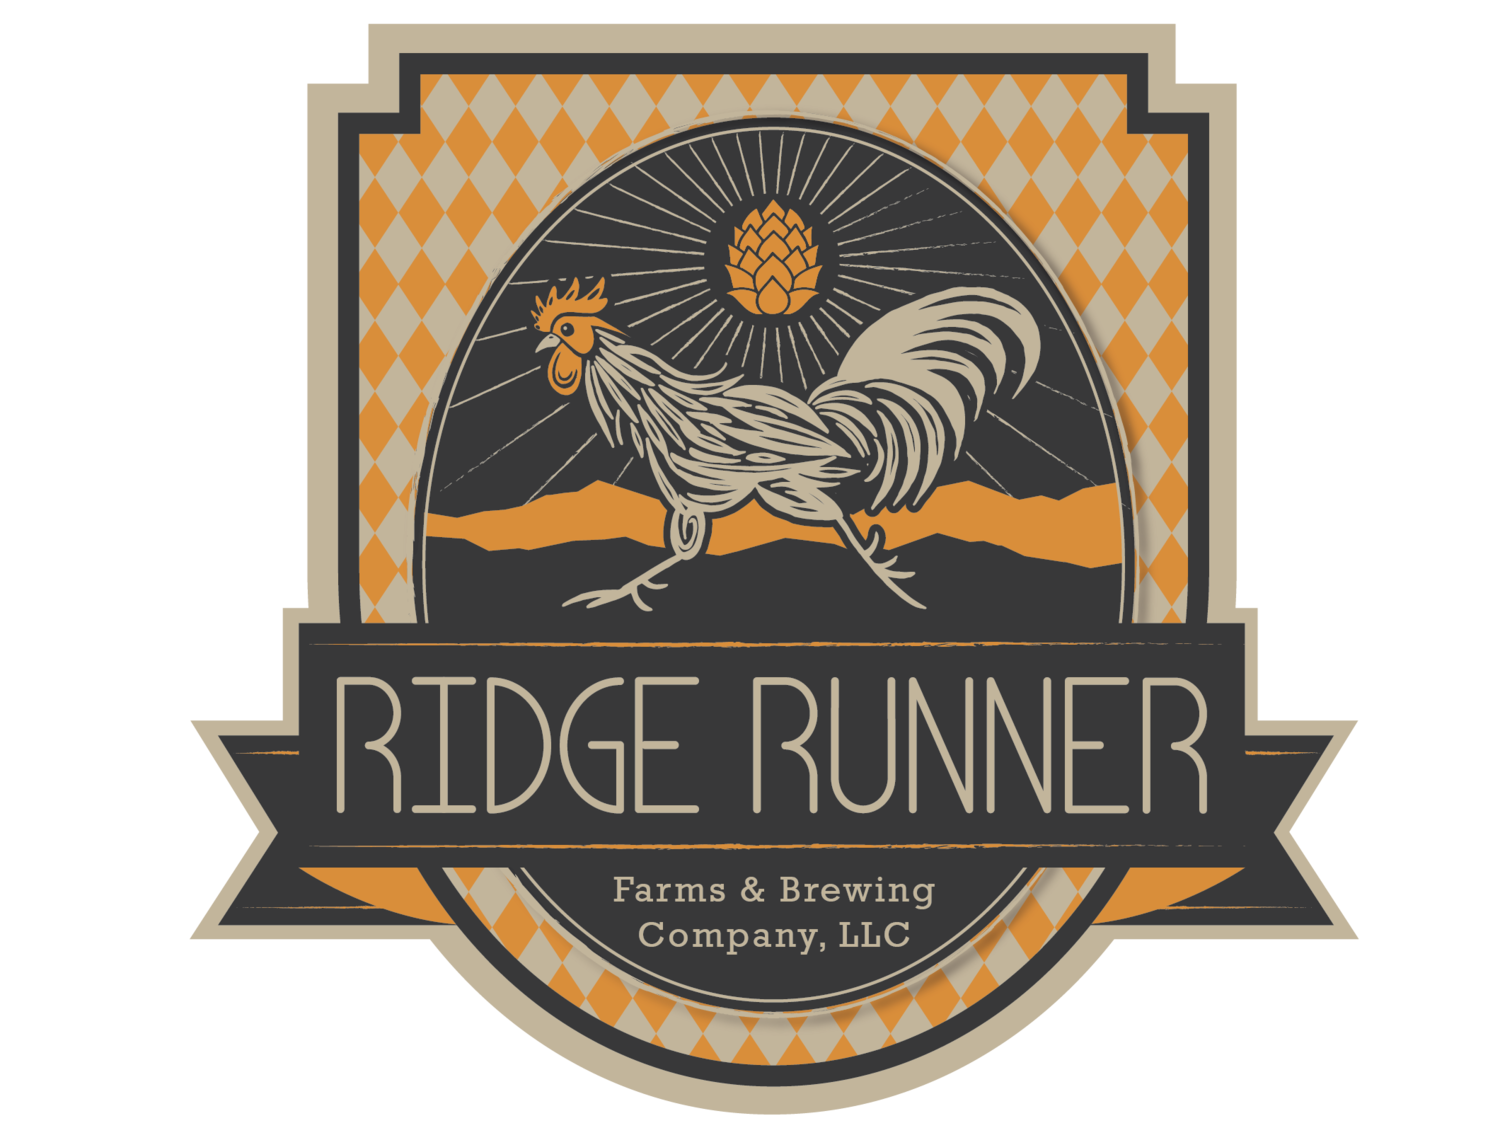 Ridge Runner Farms and Brewing Co.